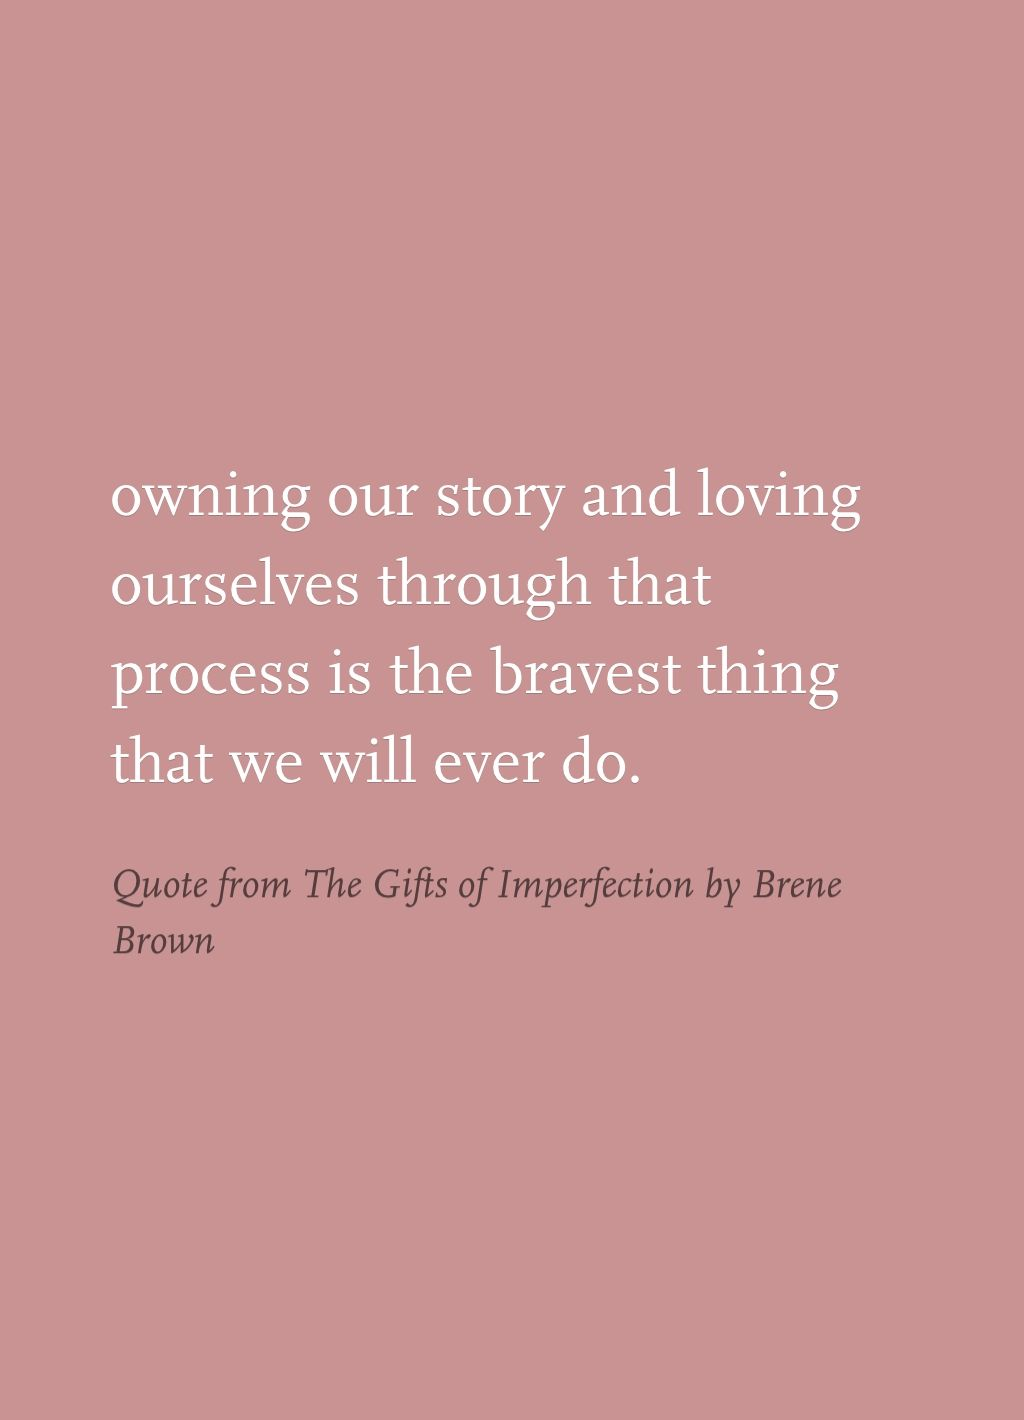 Owning our story and loving ourselves through that process is the bravest thing that we will